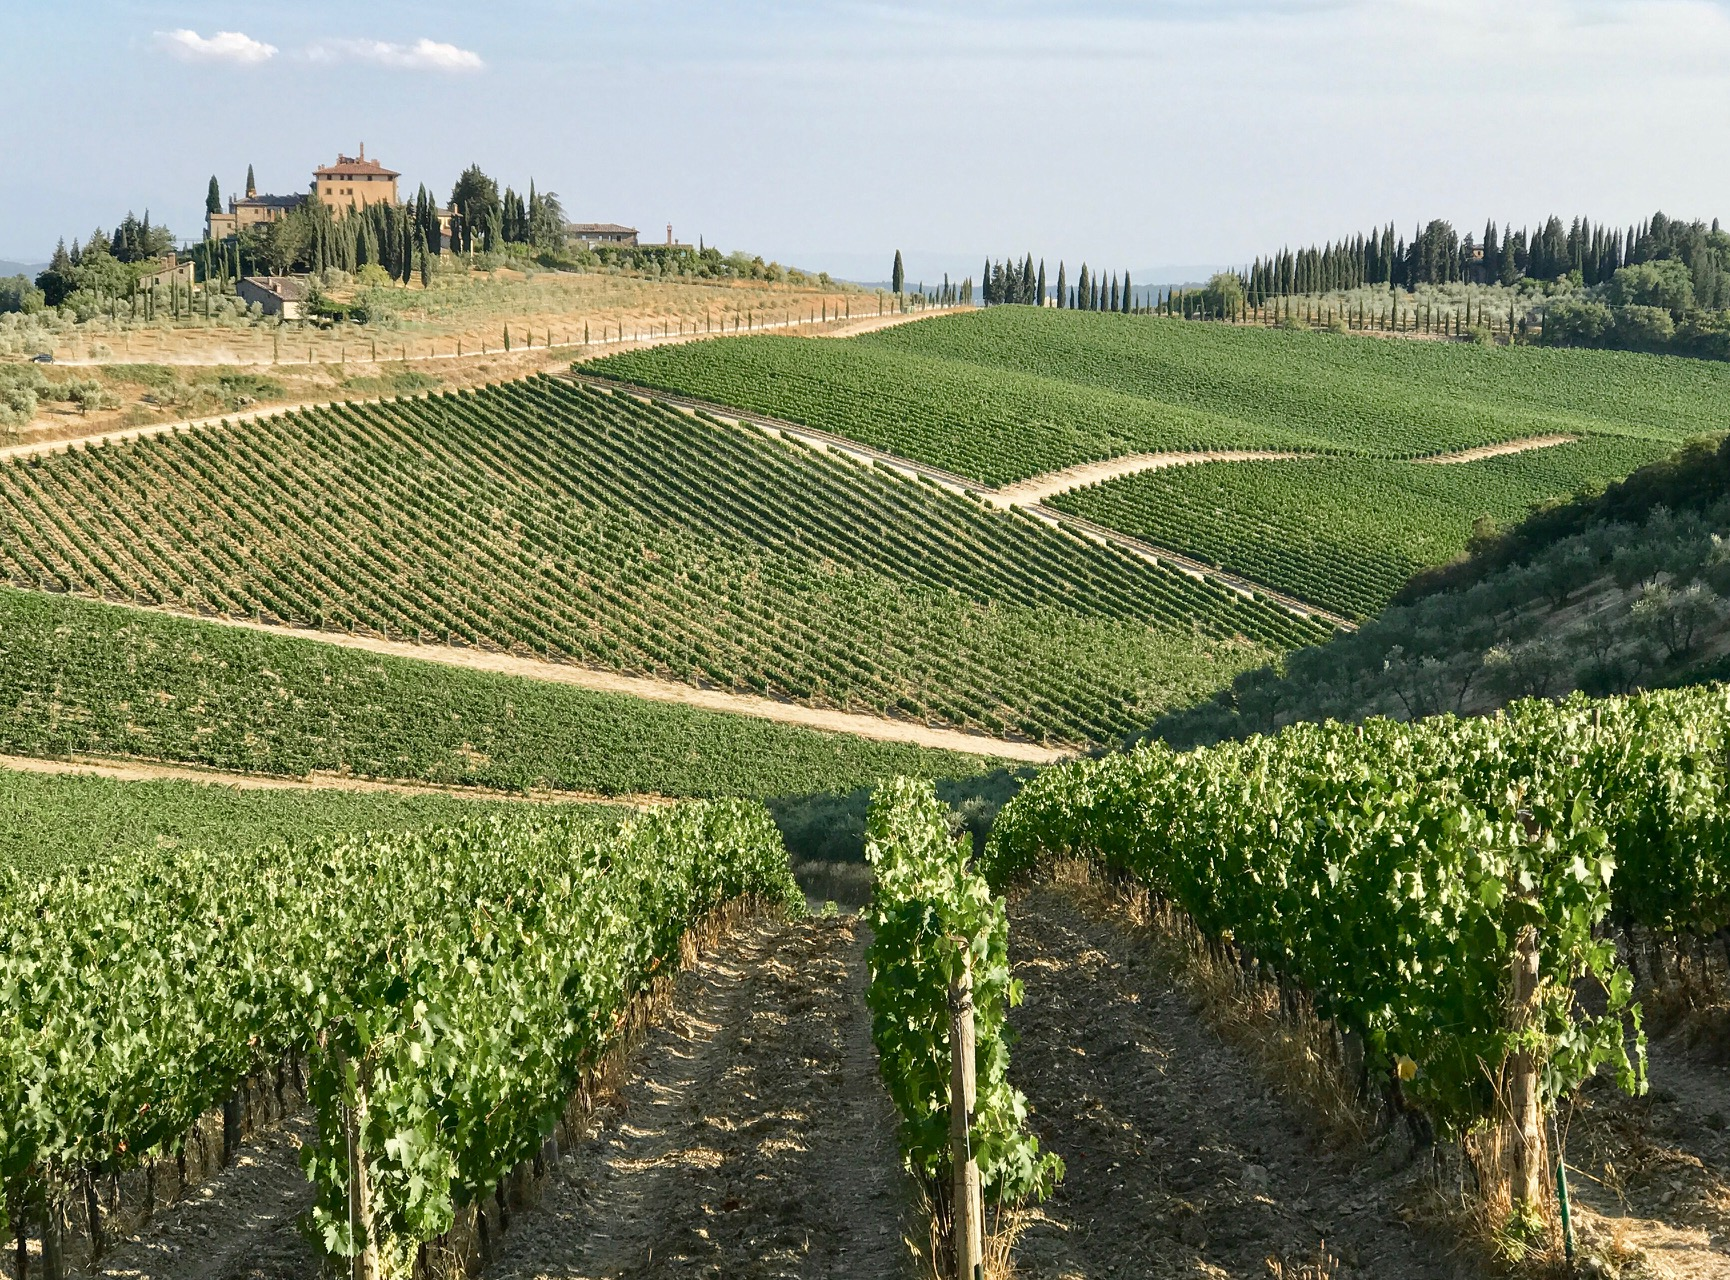 A photograph of an Italian vineyard.